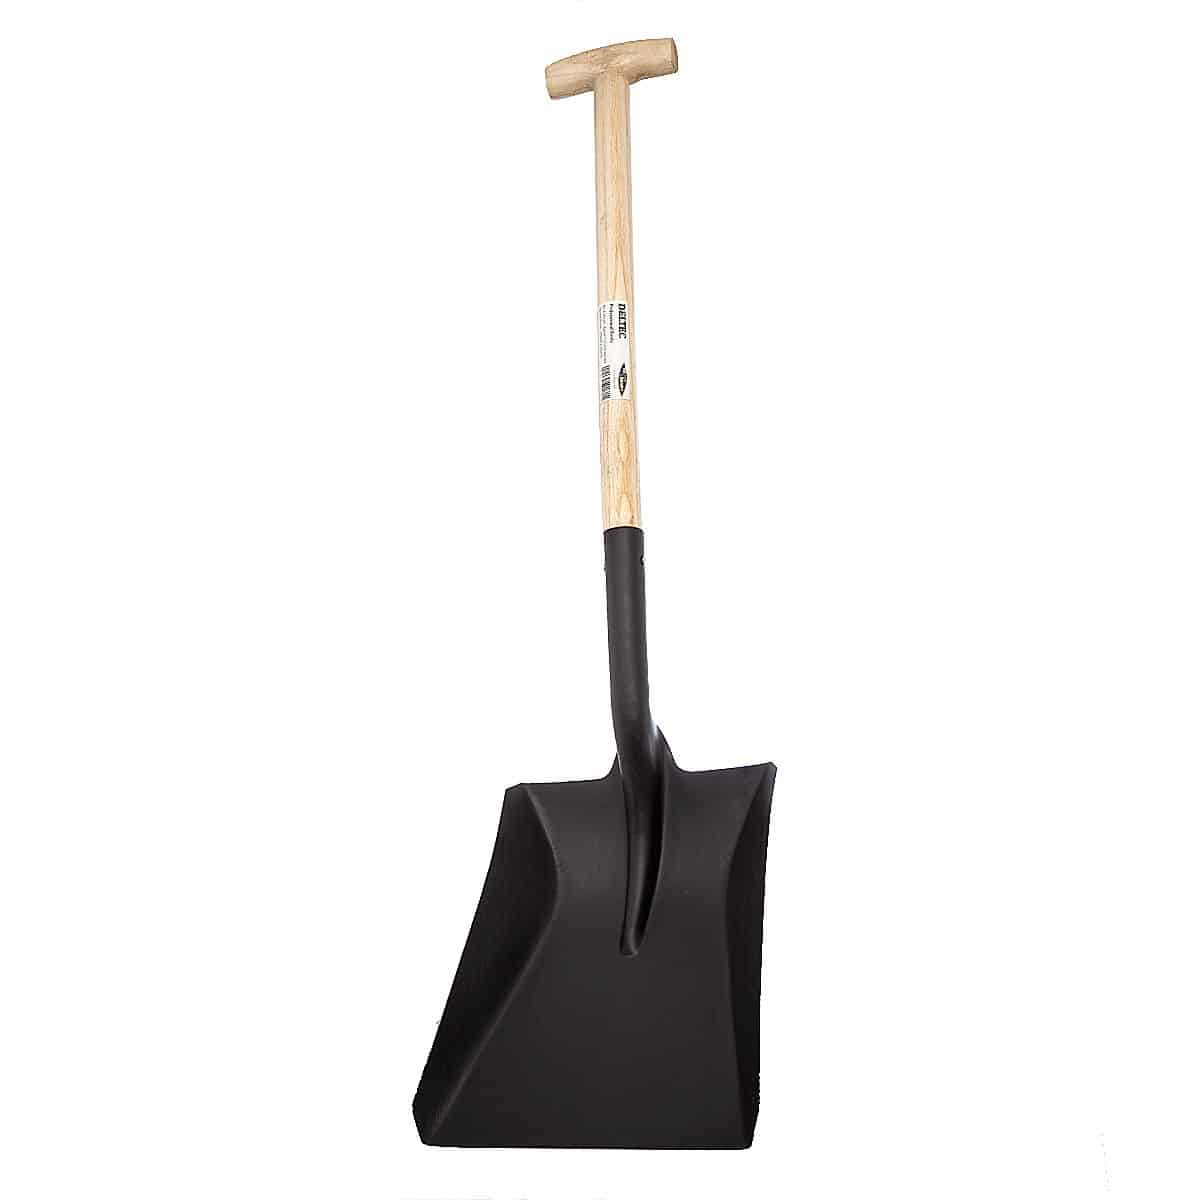 Barrel t crutch handle shovel with square mouth